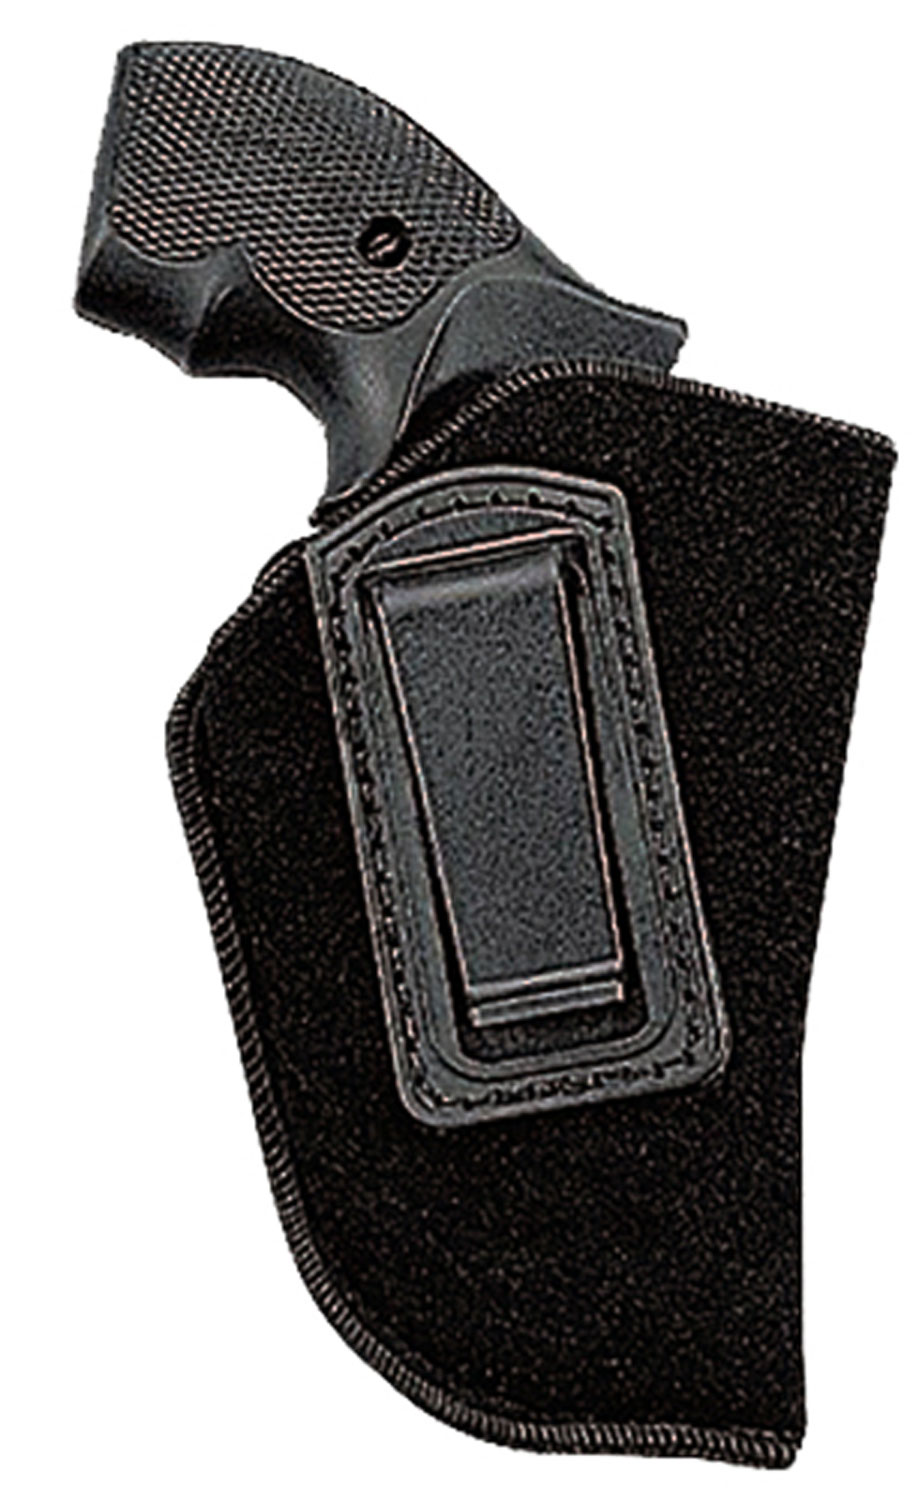 Uncle Mikes 8910 Inside the Pants Holster 8910-1 10-1 Black Soft Suede/Laminated